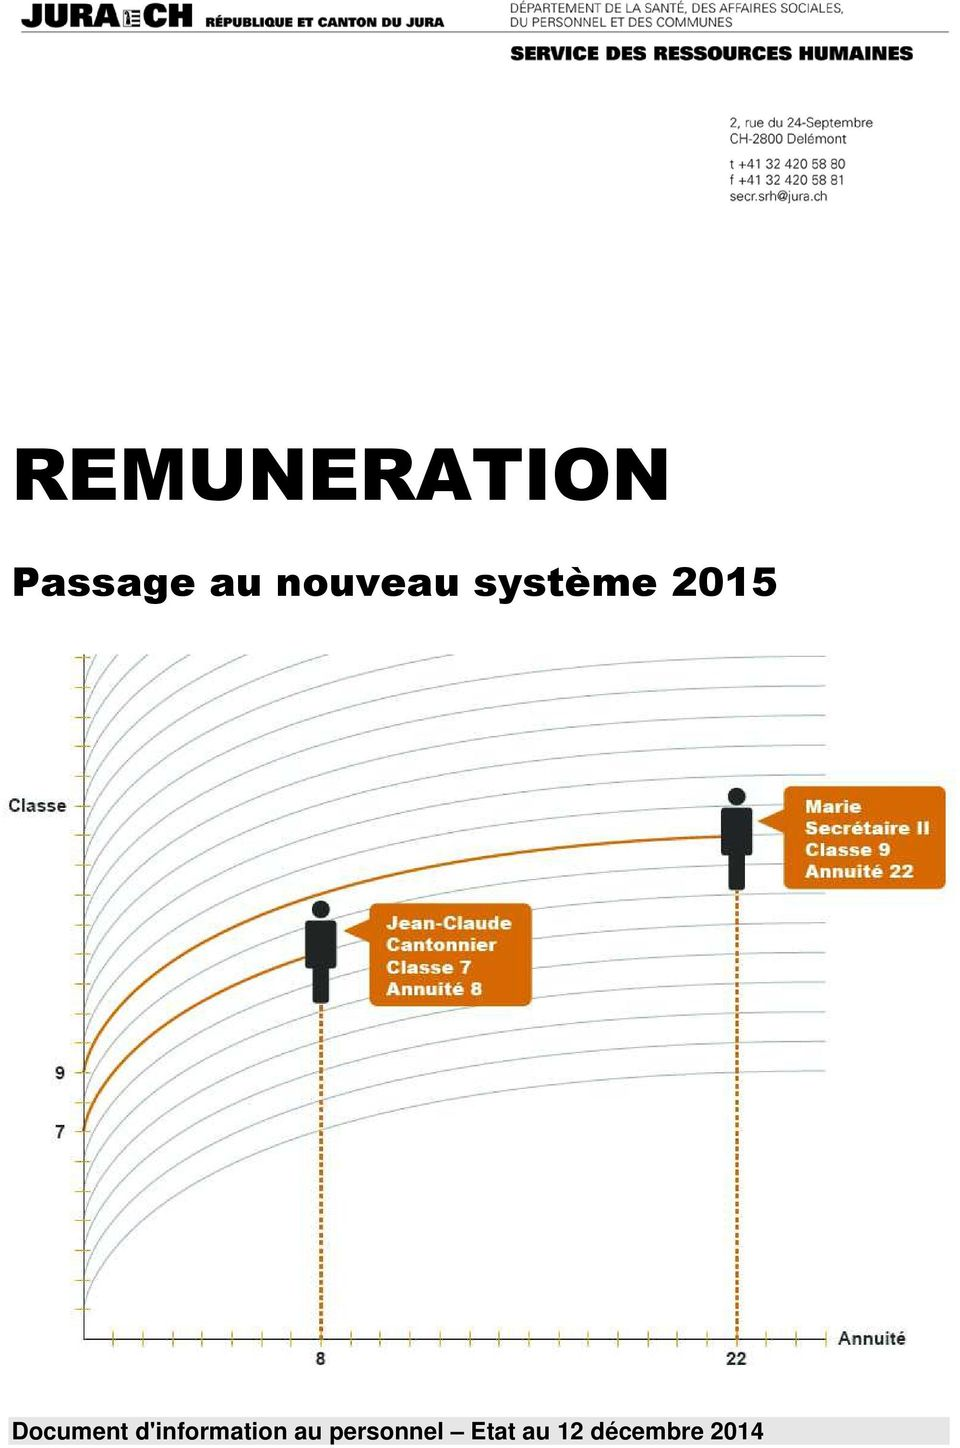 Document d'information au